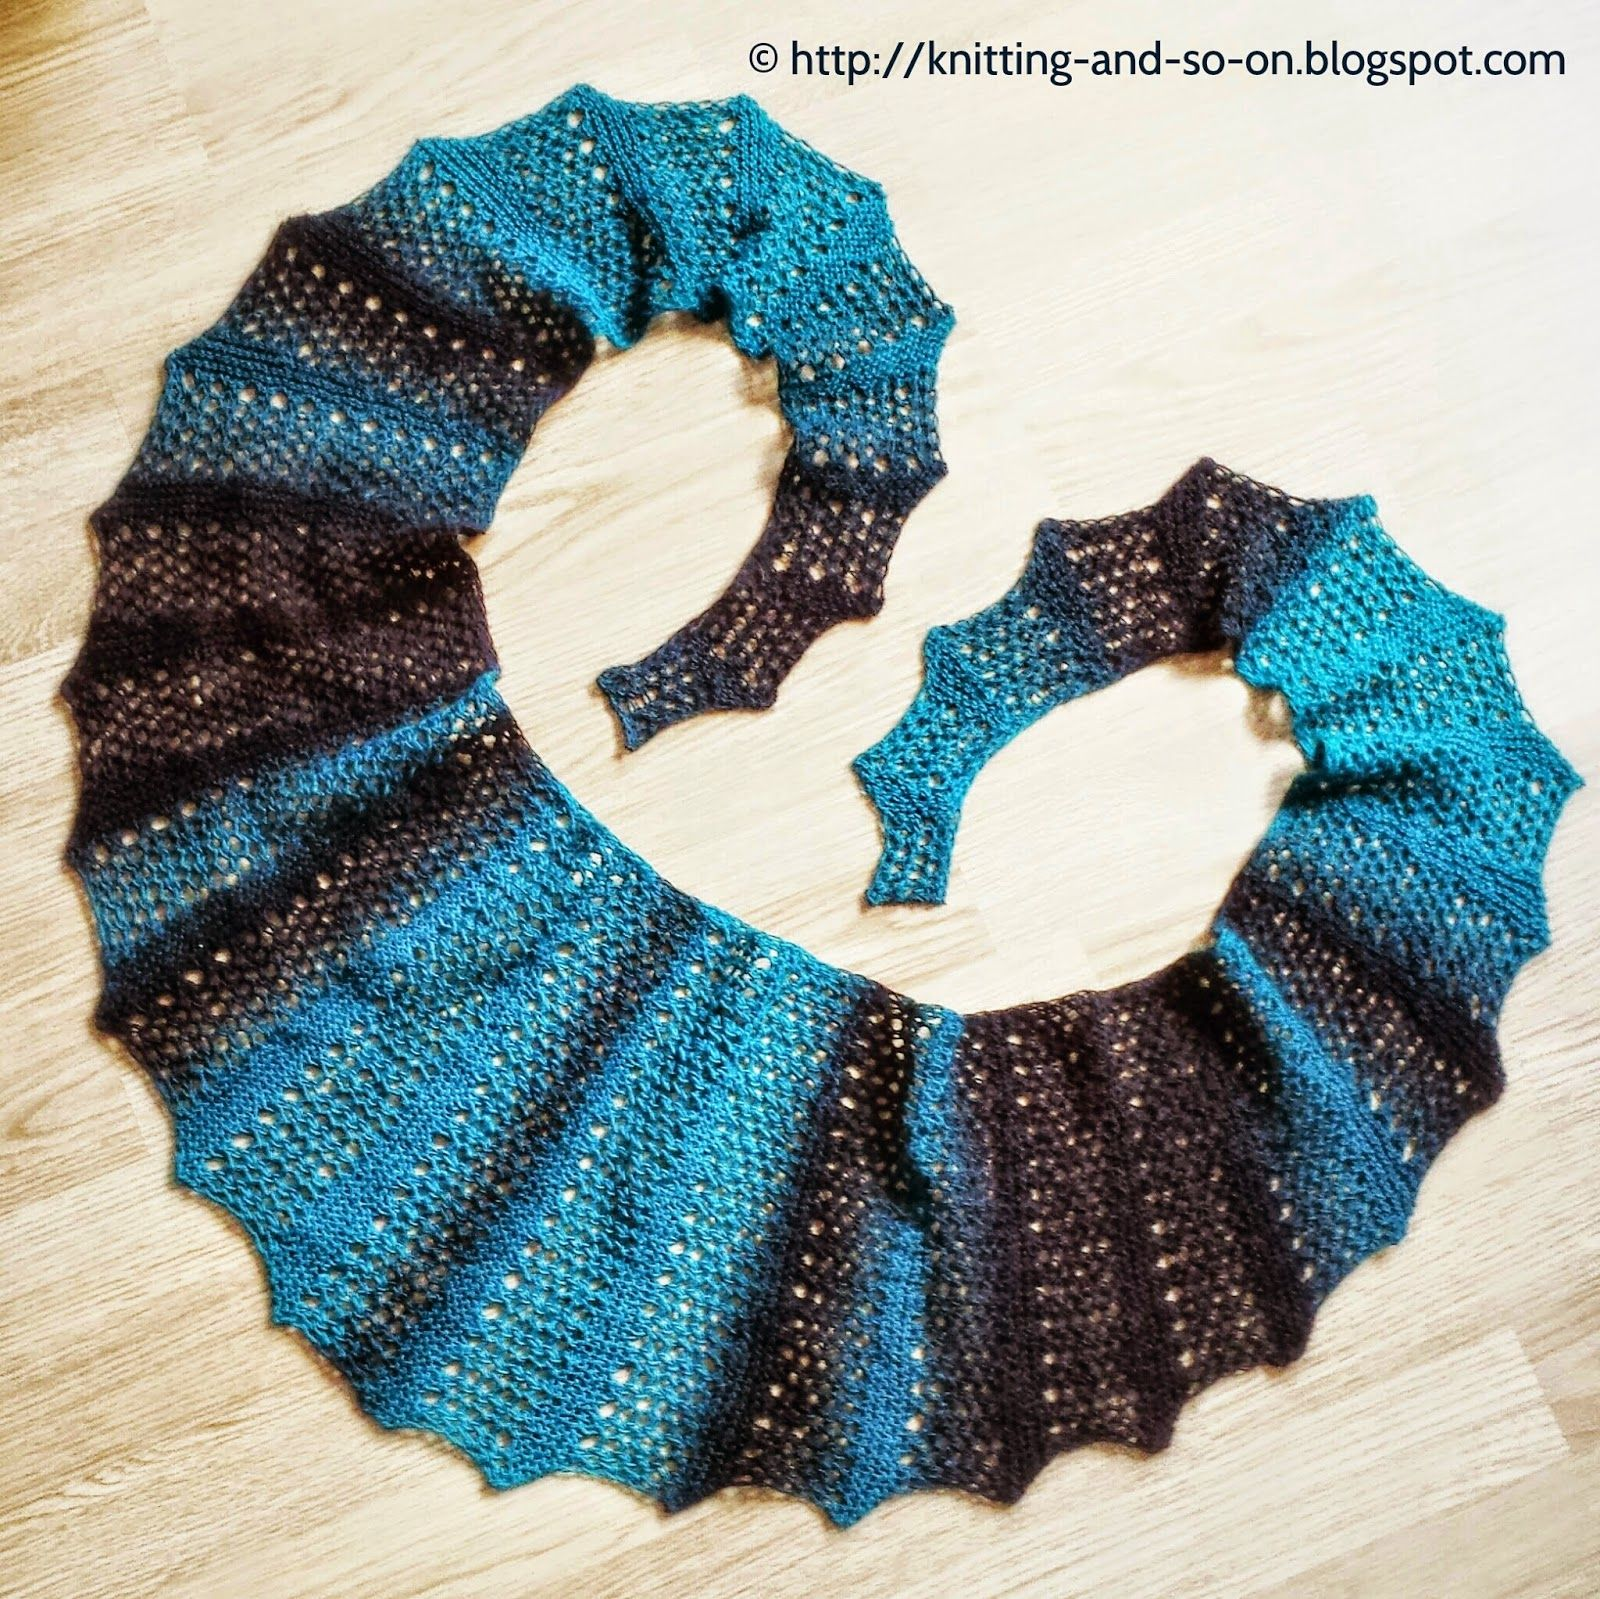 Free Knitting Pattern: Seifenblasen Lace Scarf | Patterns | Pinterest